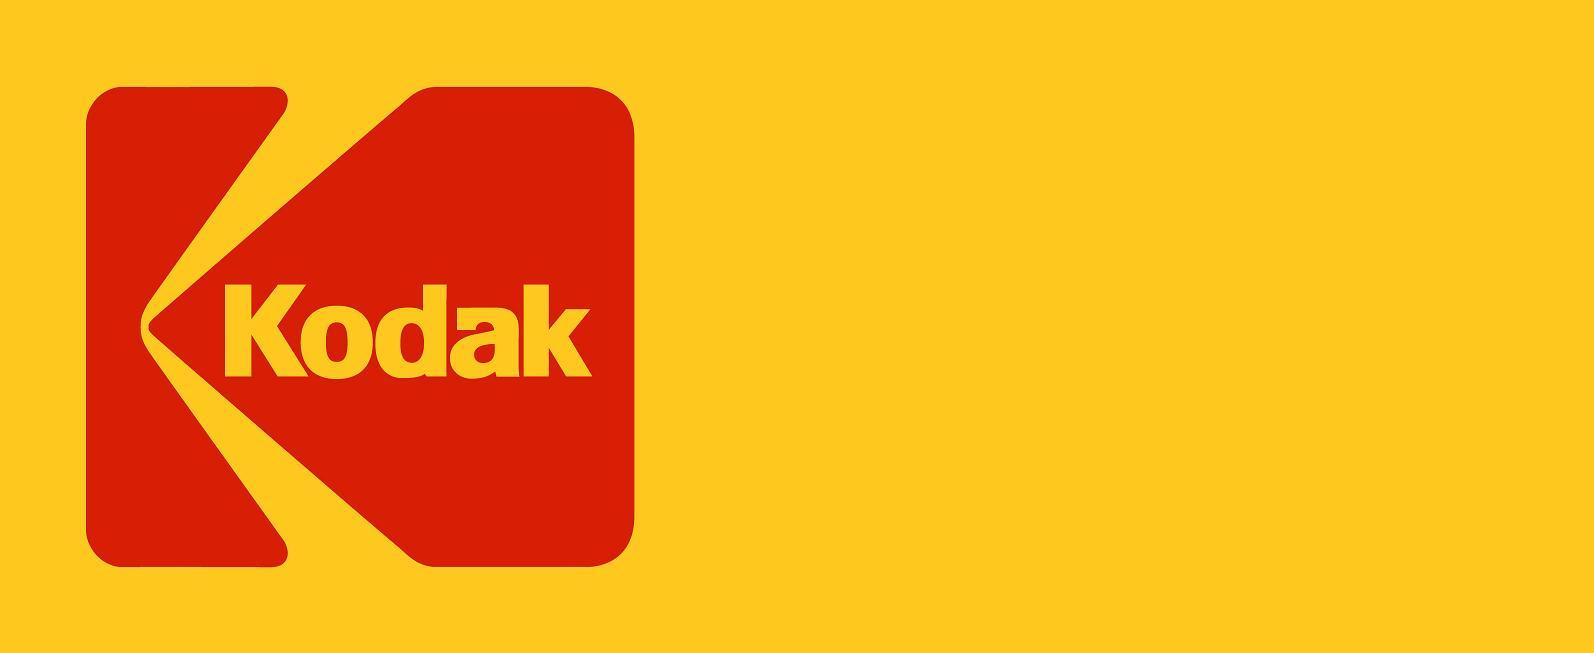 Kodak the end of an era – is the iconic yellow box dead?